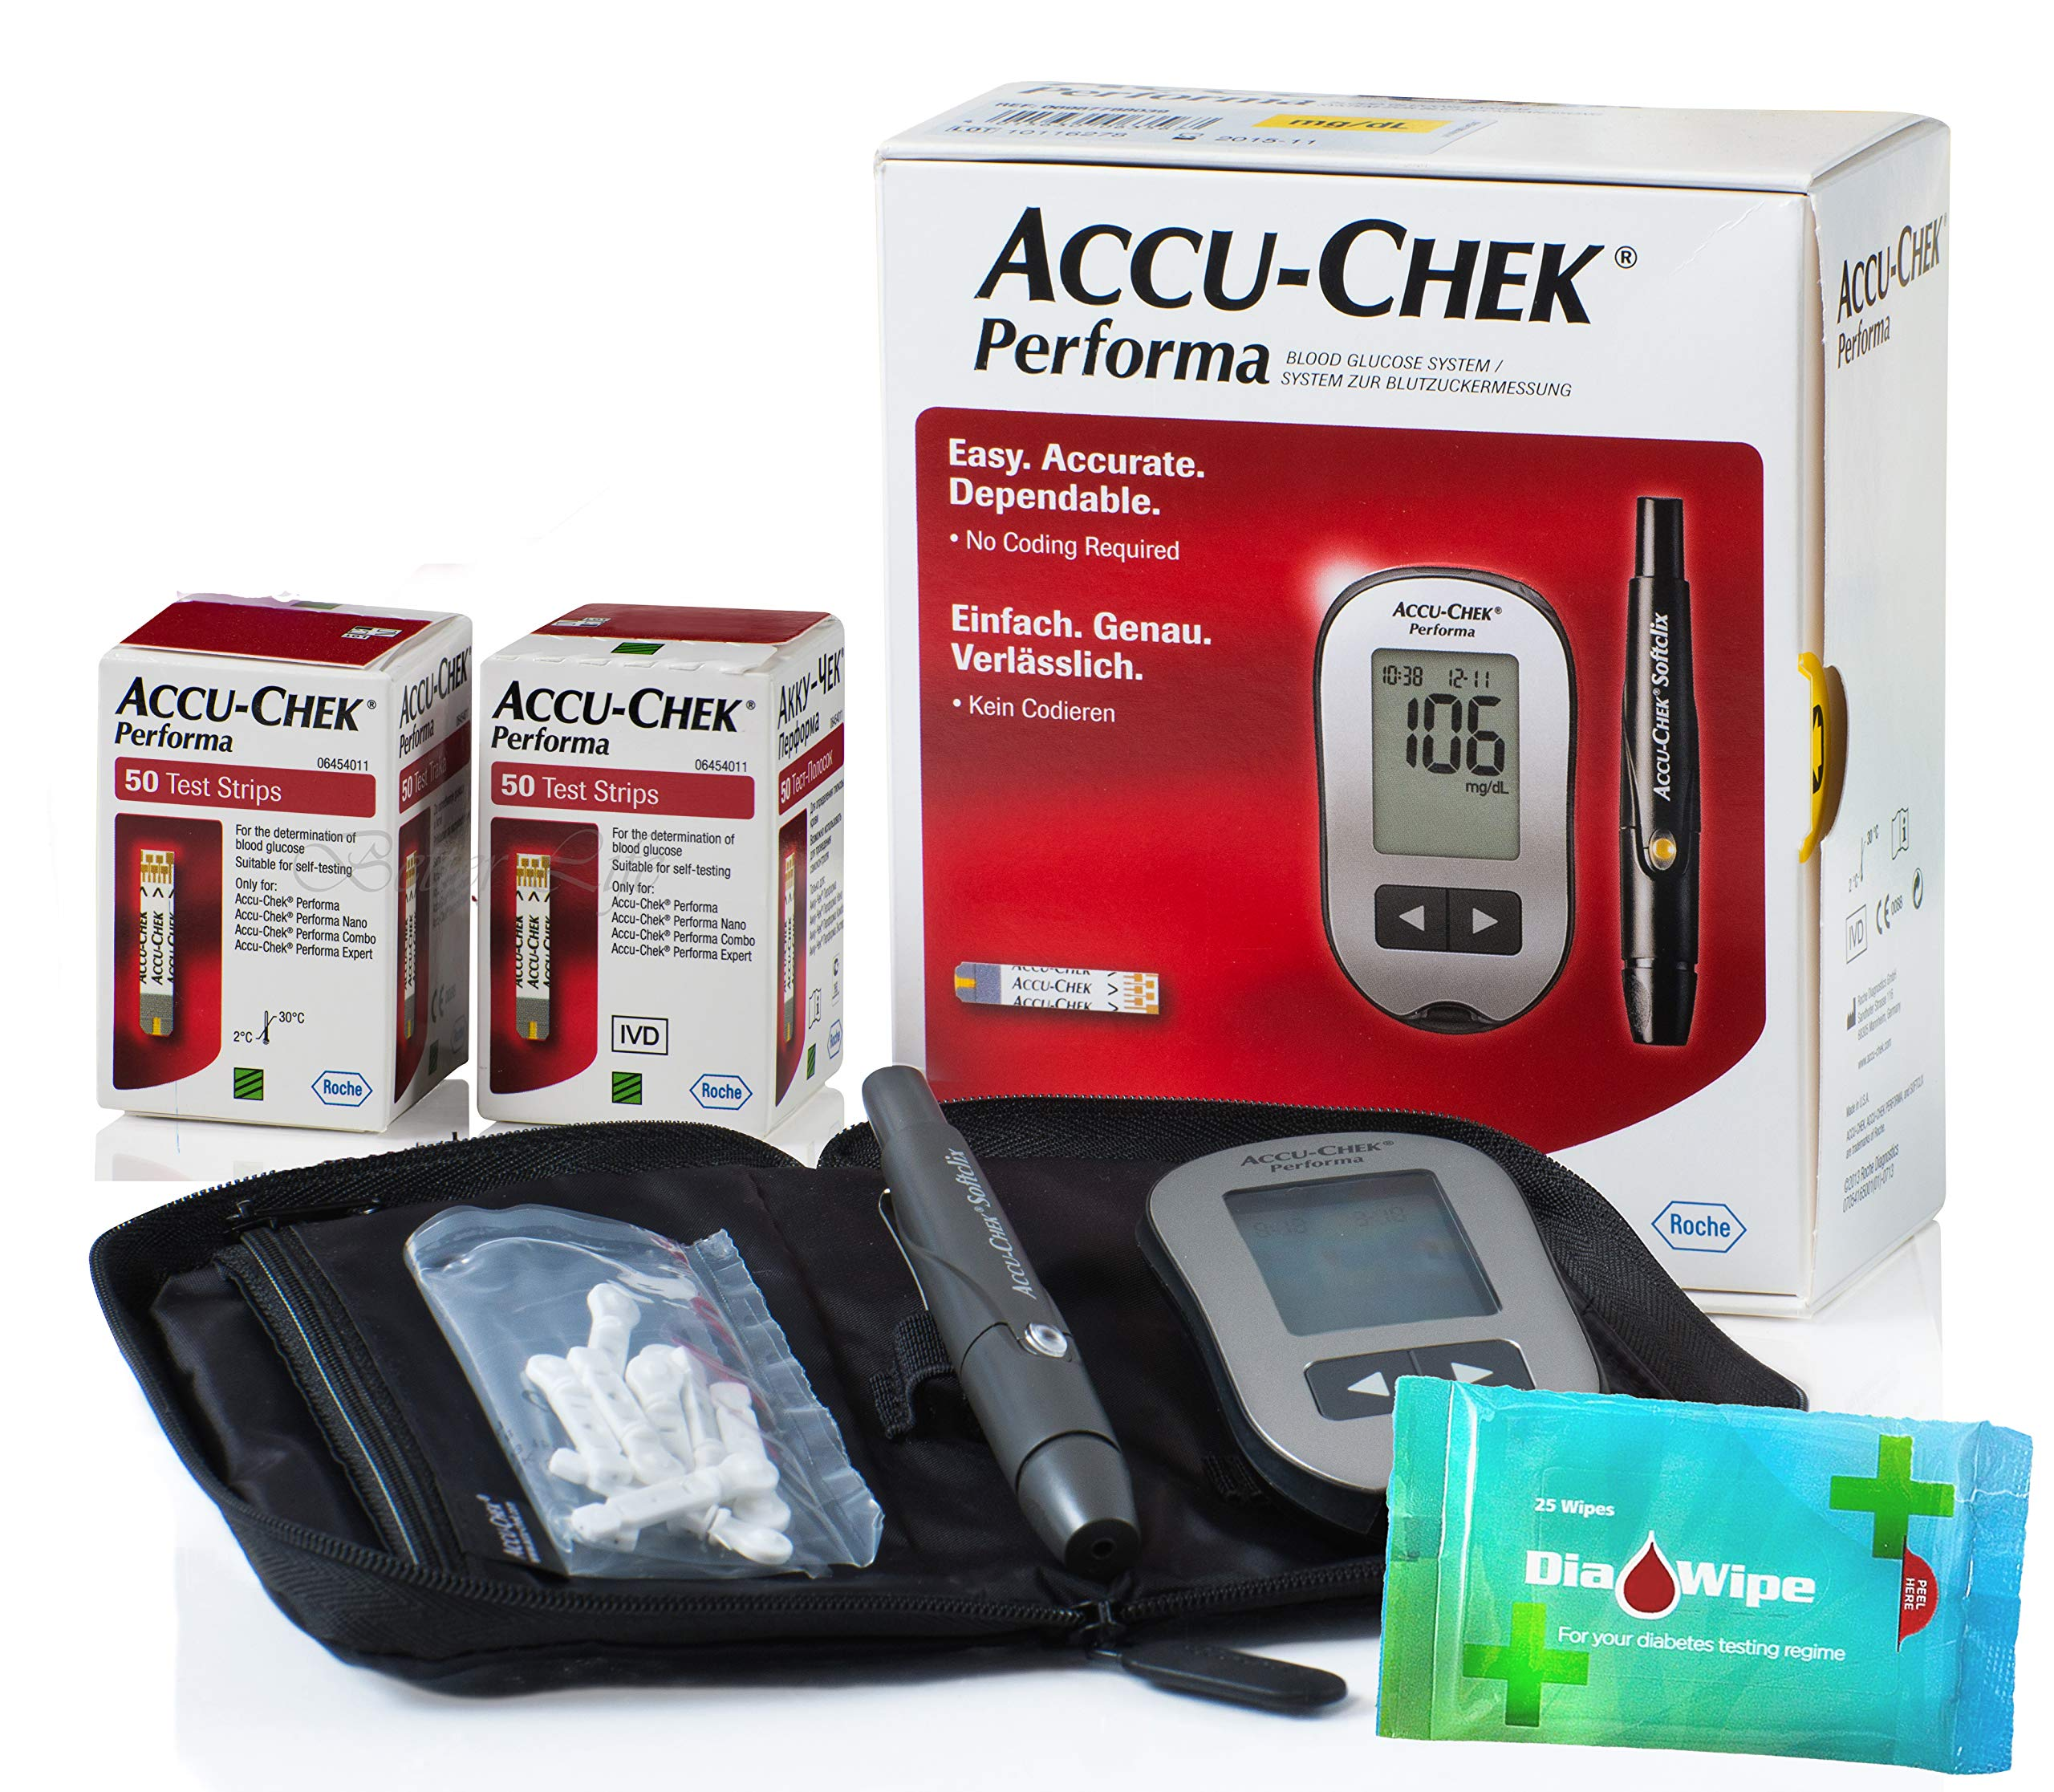 Accu Chek Performa 100 Test Strips (Very Long Expiration Dates) + Glucometer Tester Monitor Kit + Softclix + Lancets + Diabetes Diawipes Finger for Accurate Blood Level Results Accuchek Accu-Check